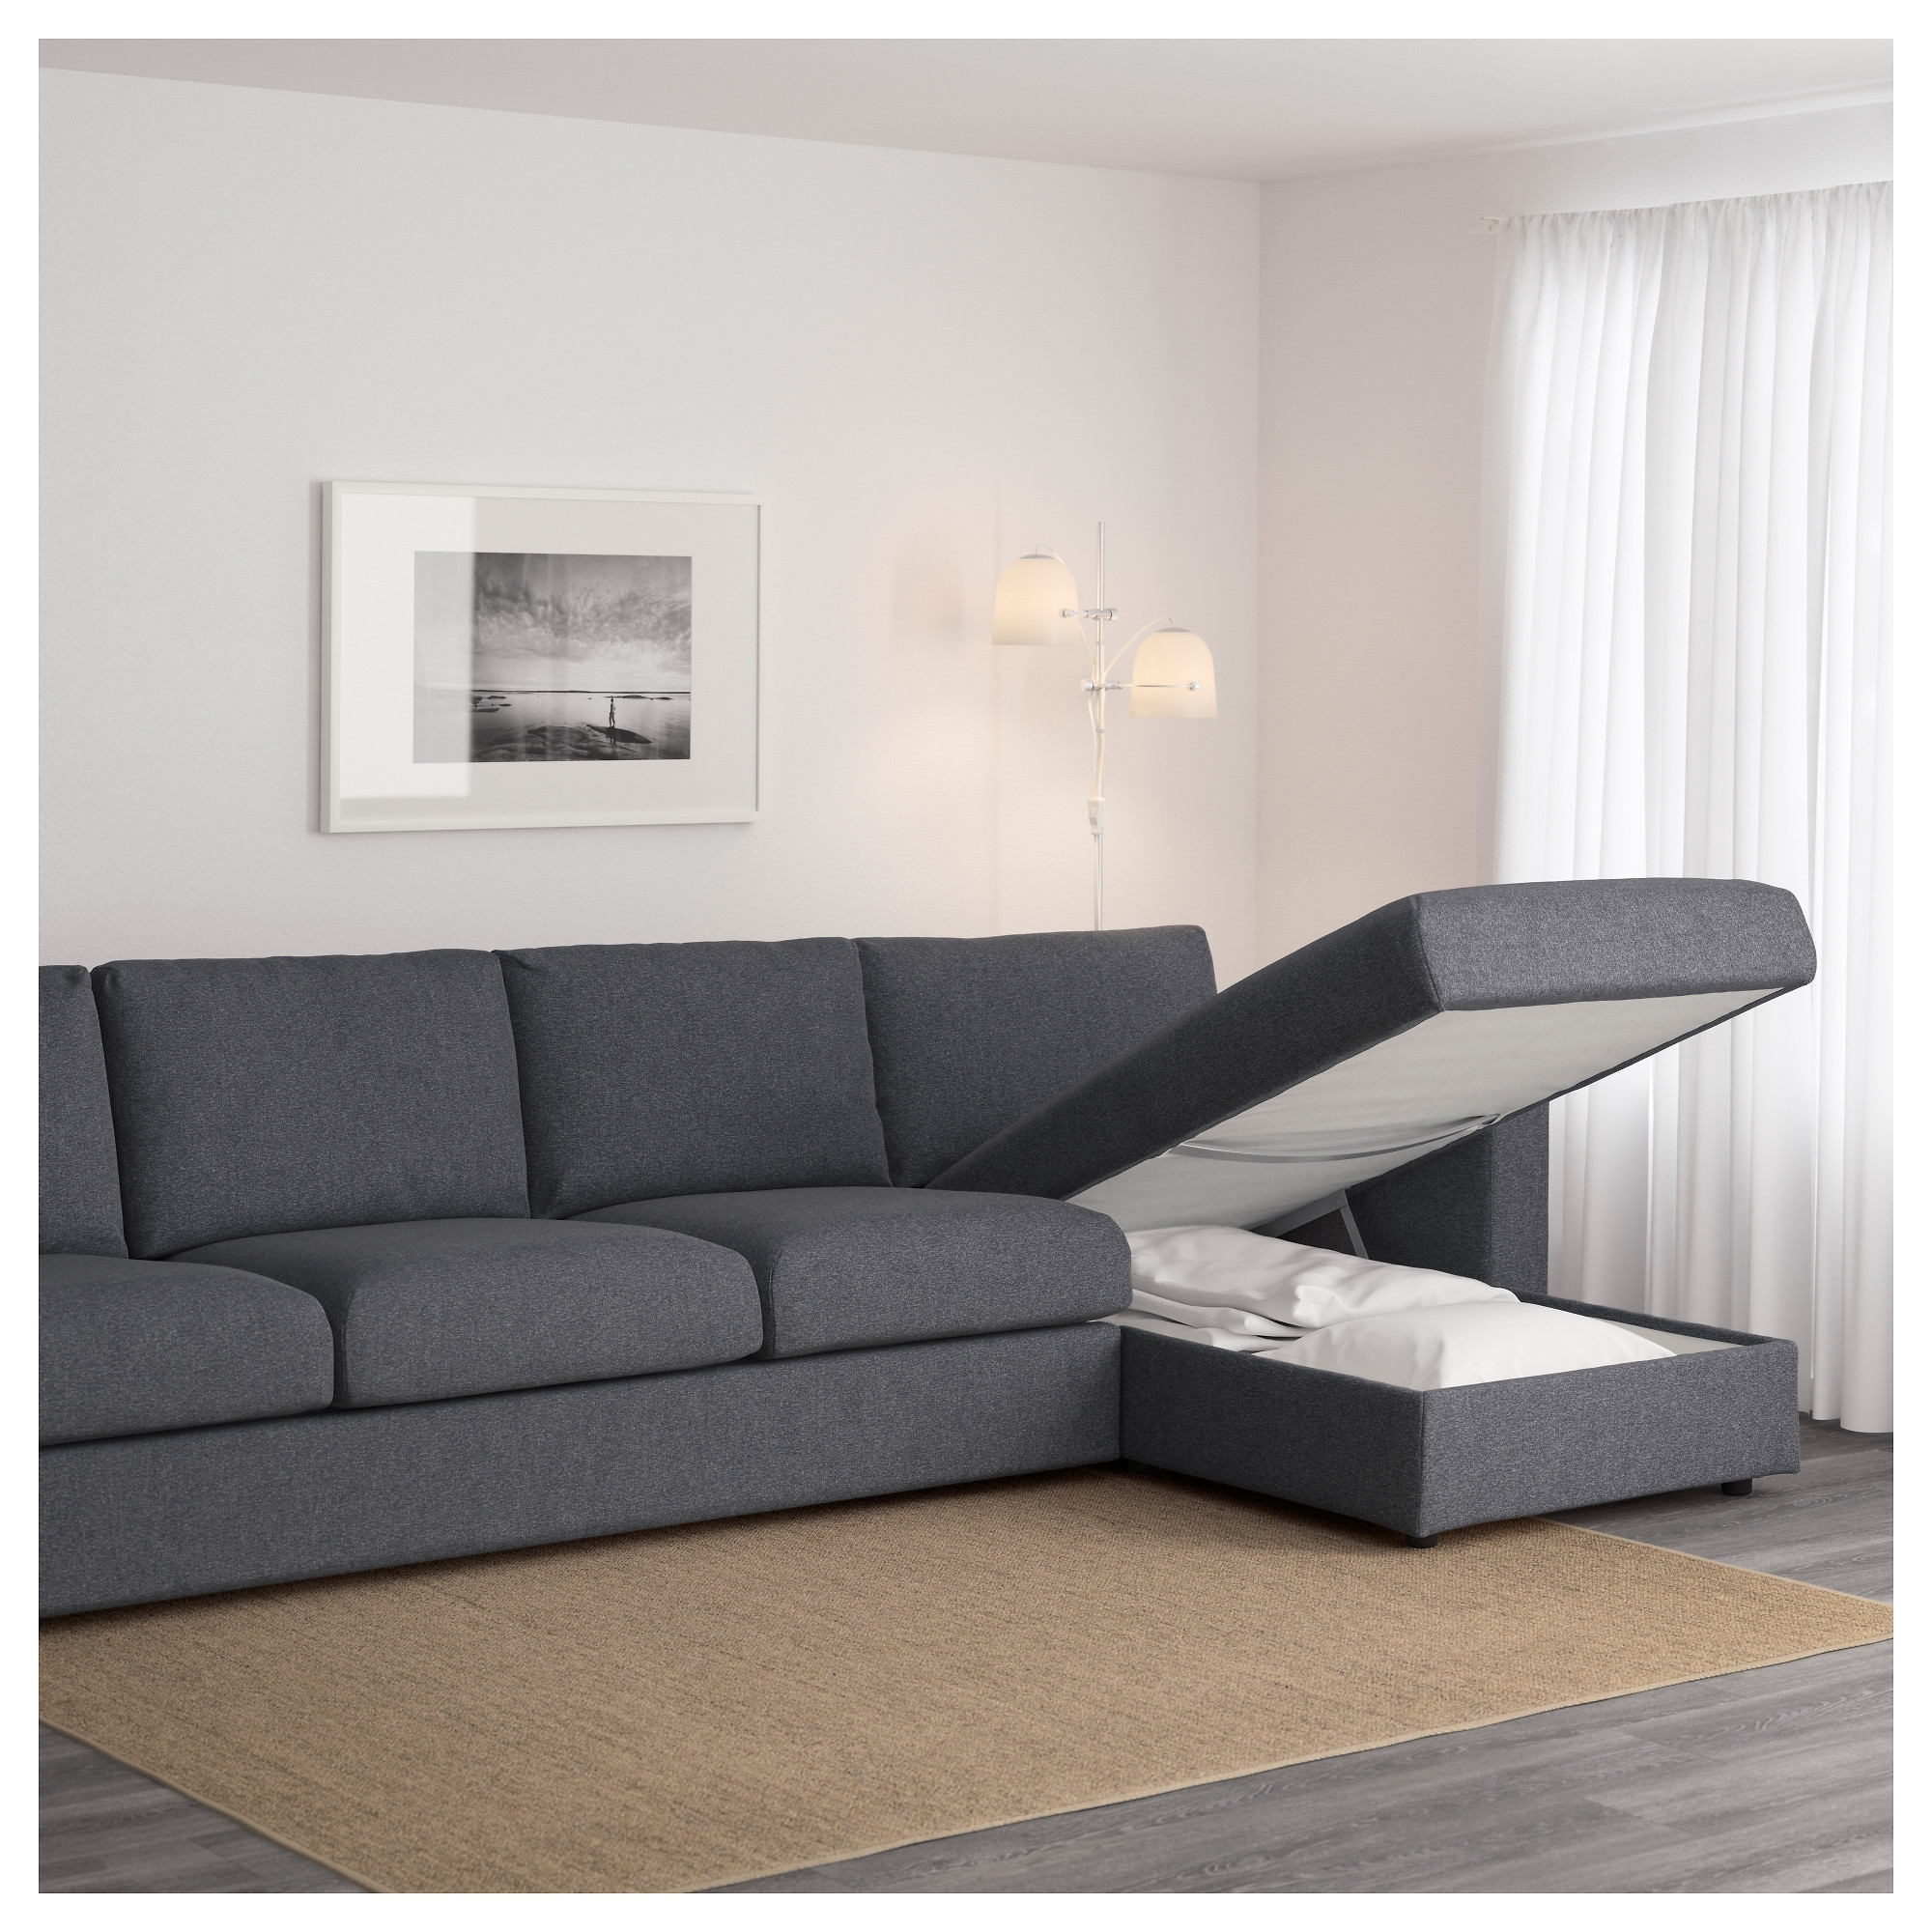 Vimle 4 Seat Sofa With Chaise Longue/gunnared Medium Grey – Ikea Intended For 2017 4 Seat Sofas (View 10 of 15)